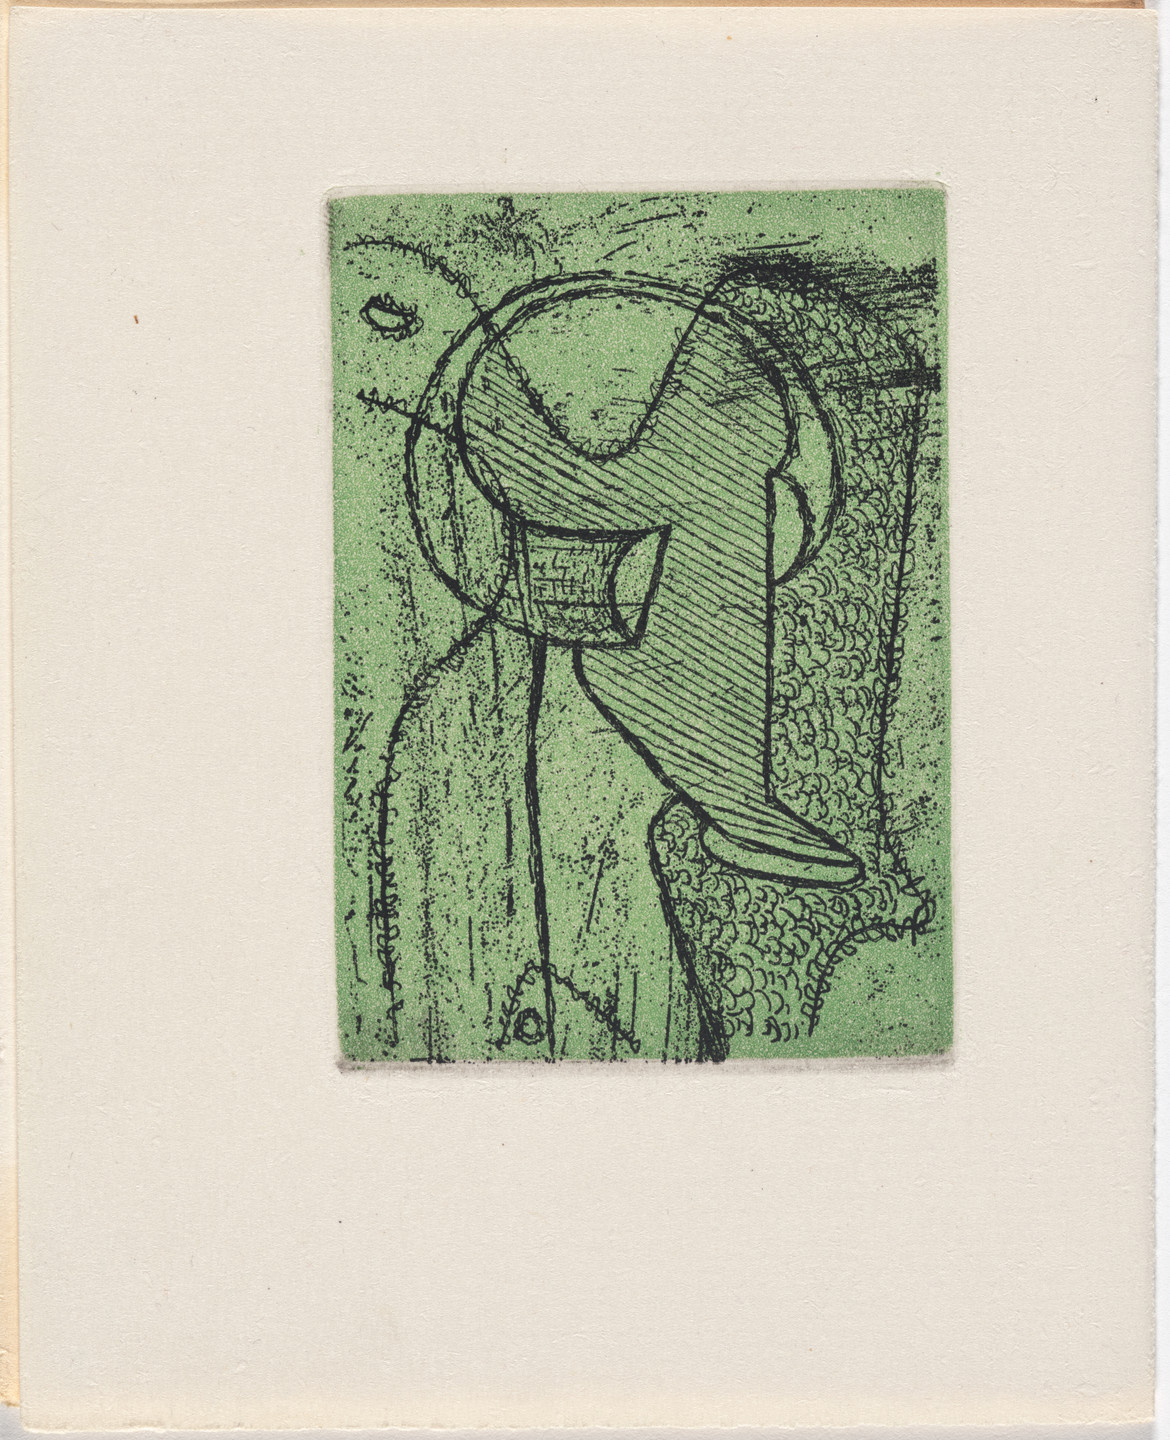 Max Ernst. Frontispiece from Monsieur Aa l'antiphilosophe: Volume I from L'Antitête. 1947–49, published 1949